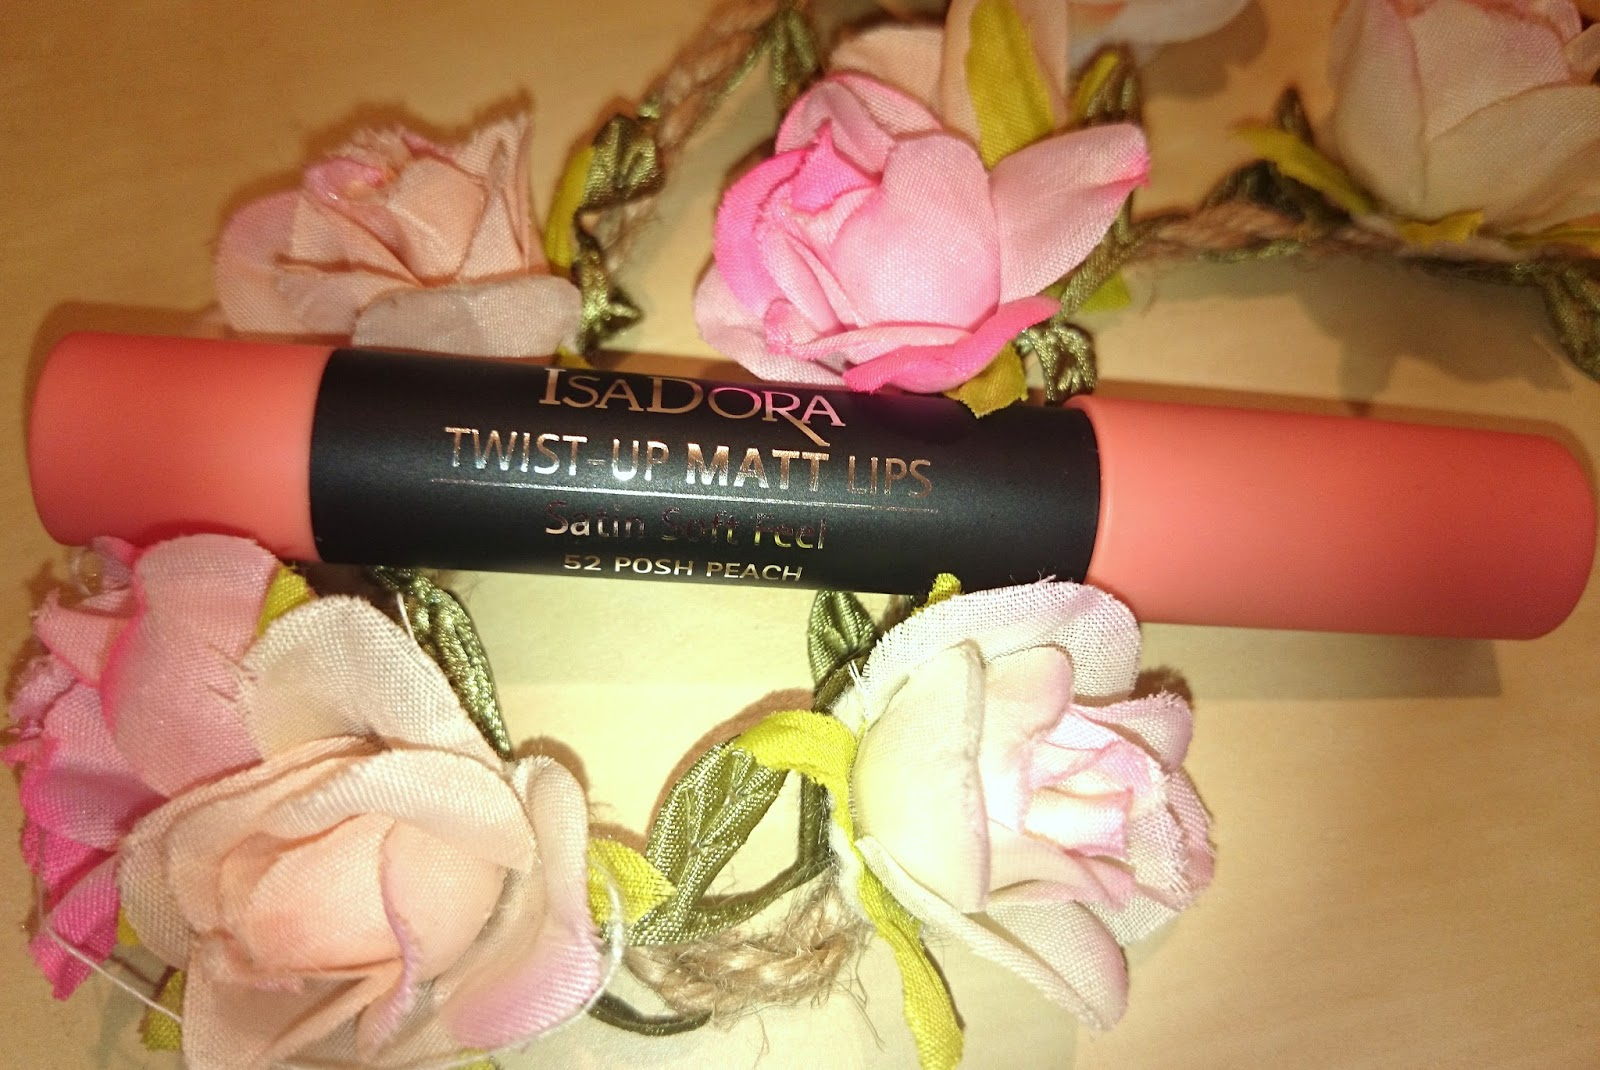 IsaDora Twist-Up Matt Lips 52 Posh Peach